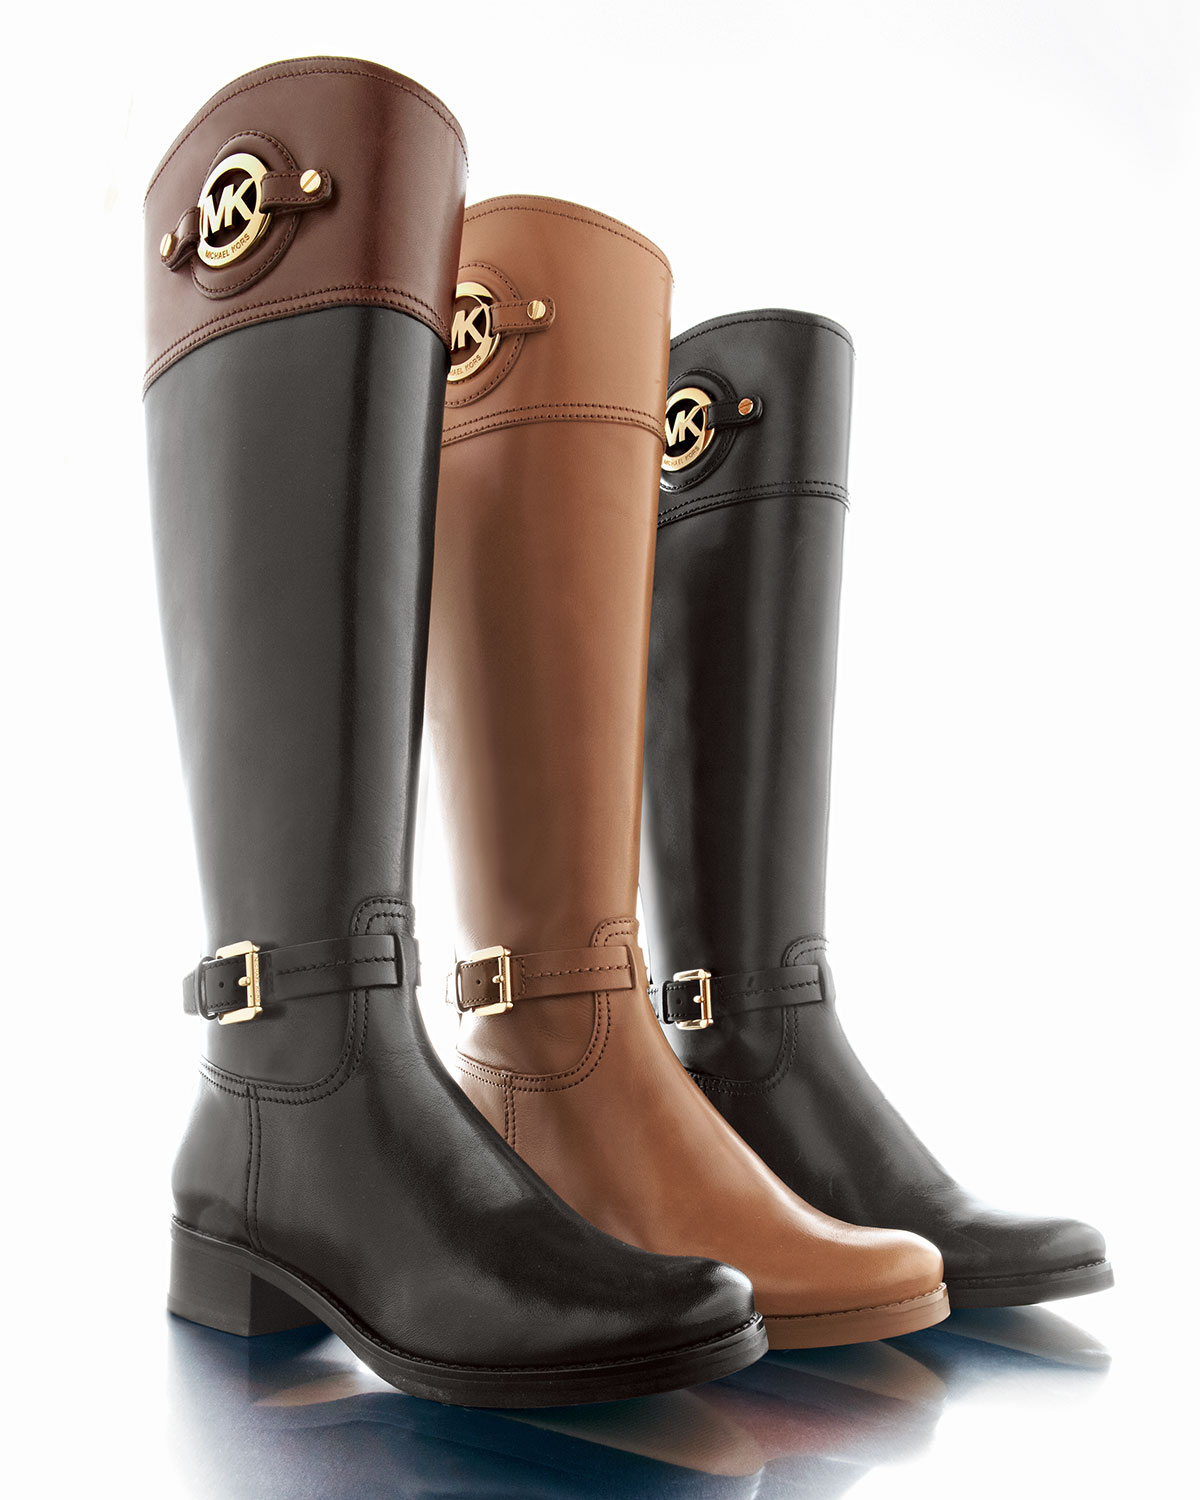 977c200c9c8 Michael Kors Ladies Boots